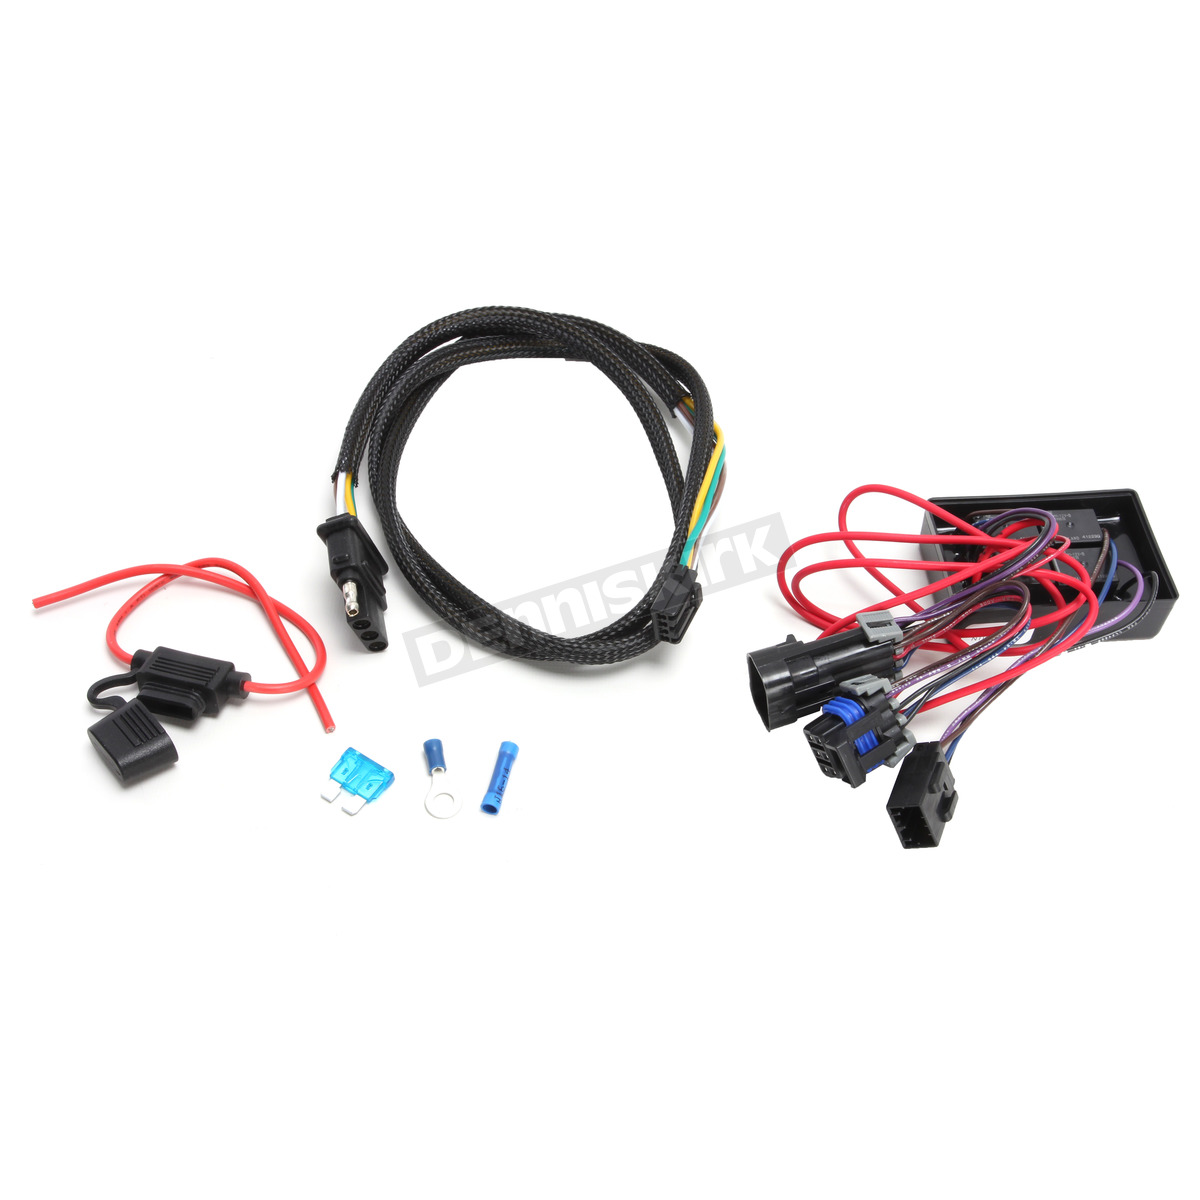 NAMZ Custom Cycle Products 4-Wire Trailer Isolator - NTIC-IND-01 ...